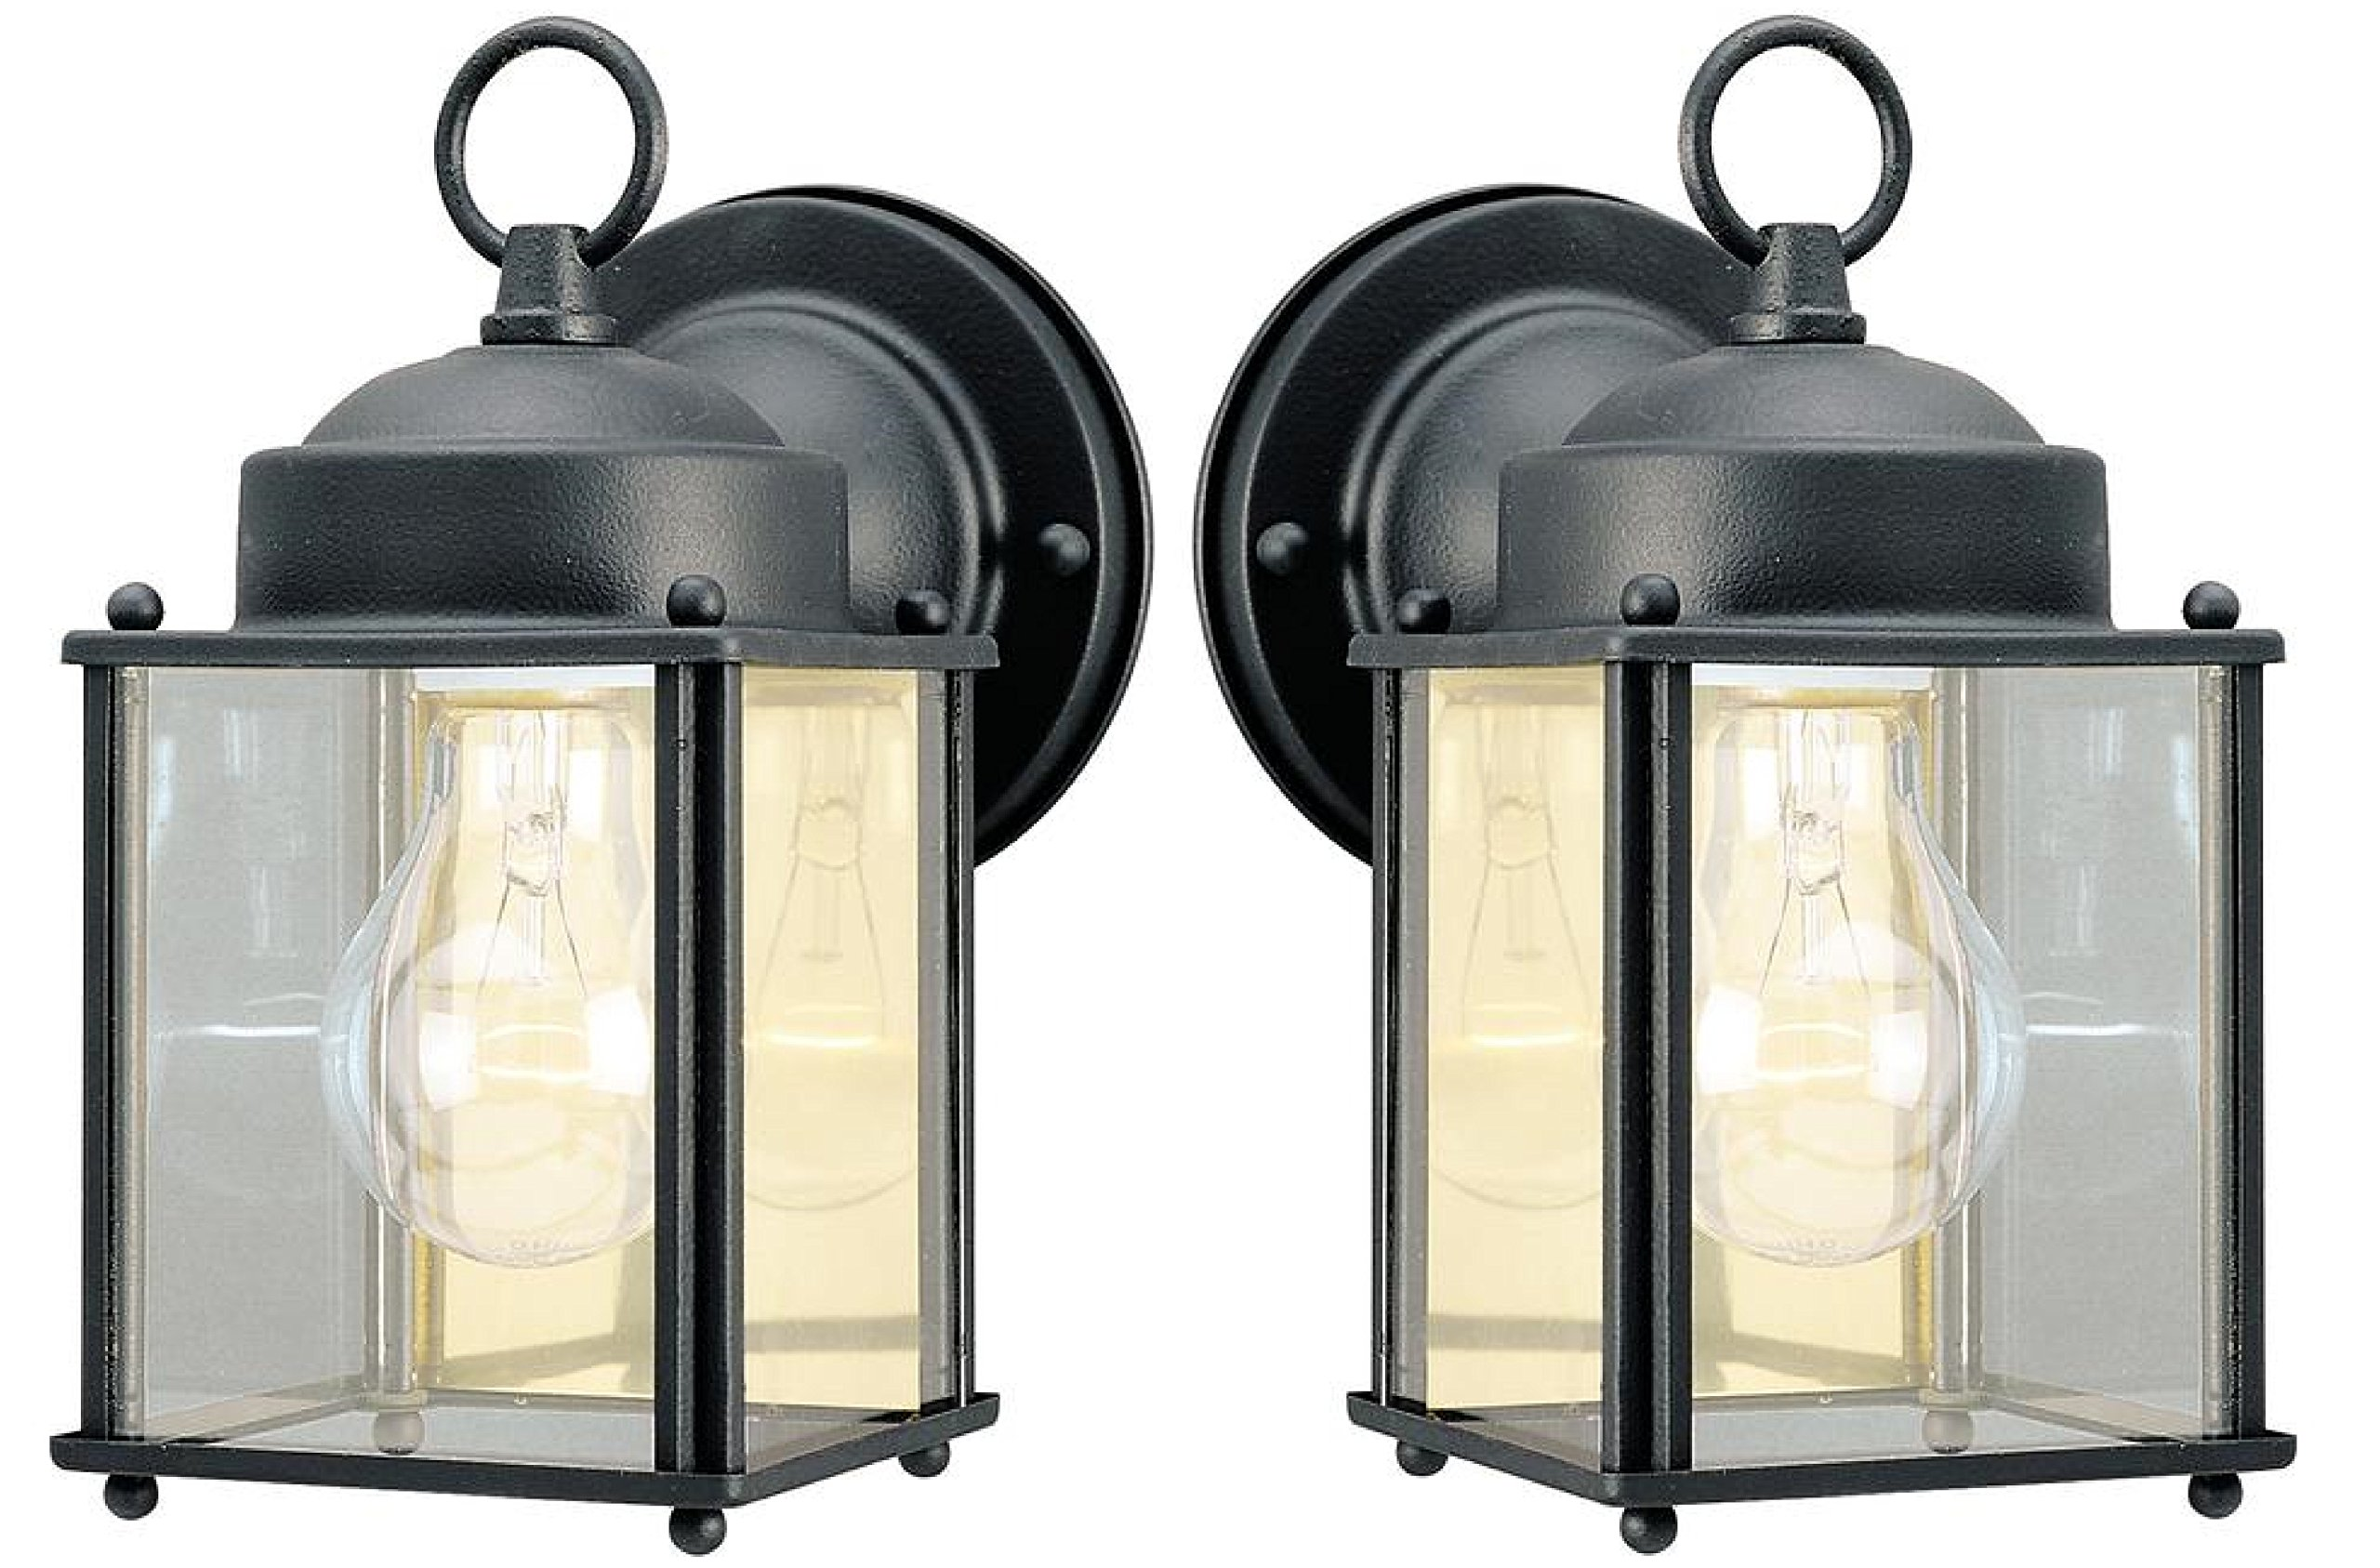 One Light Exterior Wall Lantern, Textured Black Finish on Steel with Clear Glass Panels (2 pack, Textured Black)